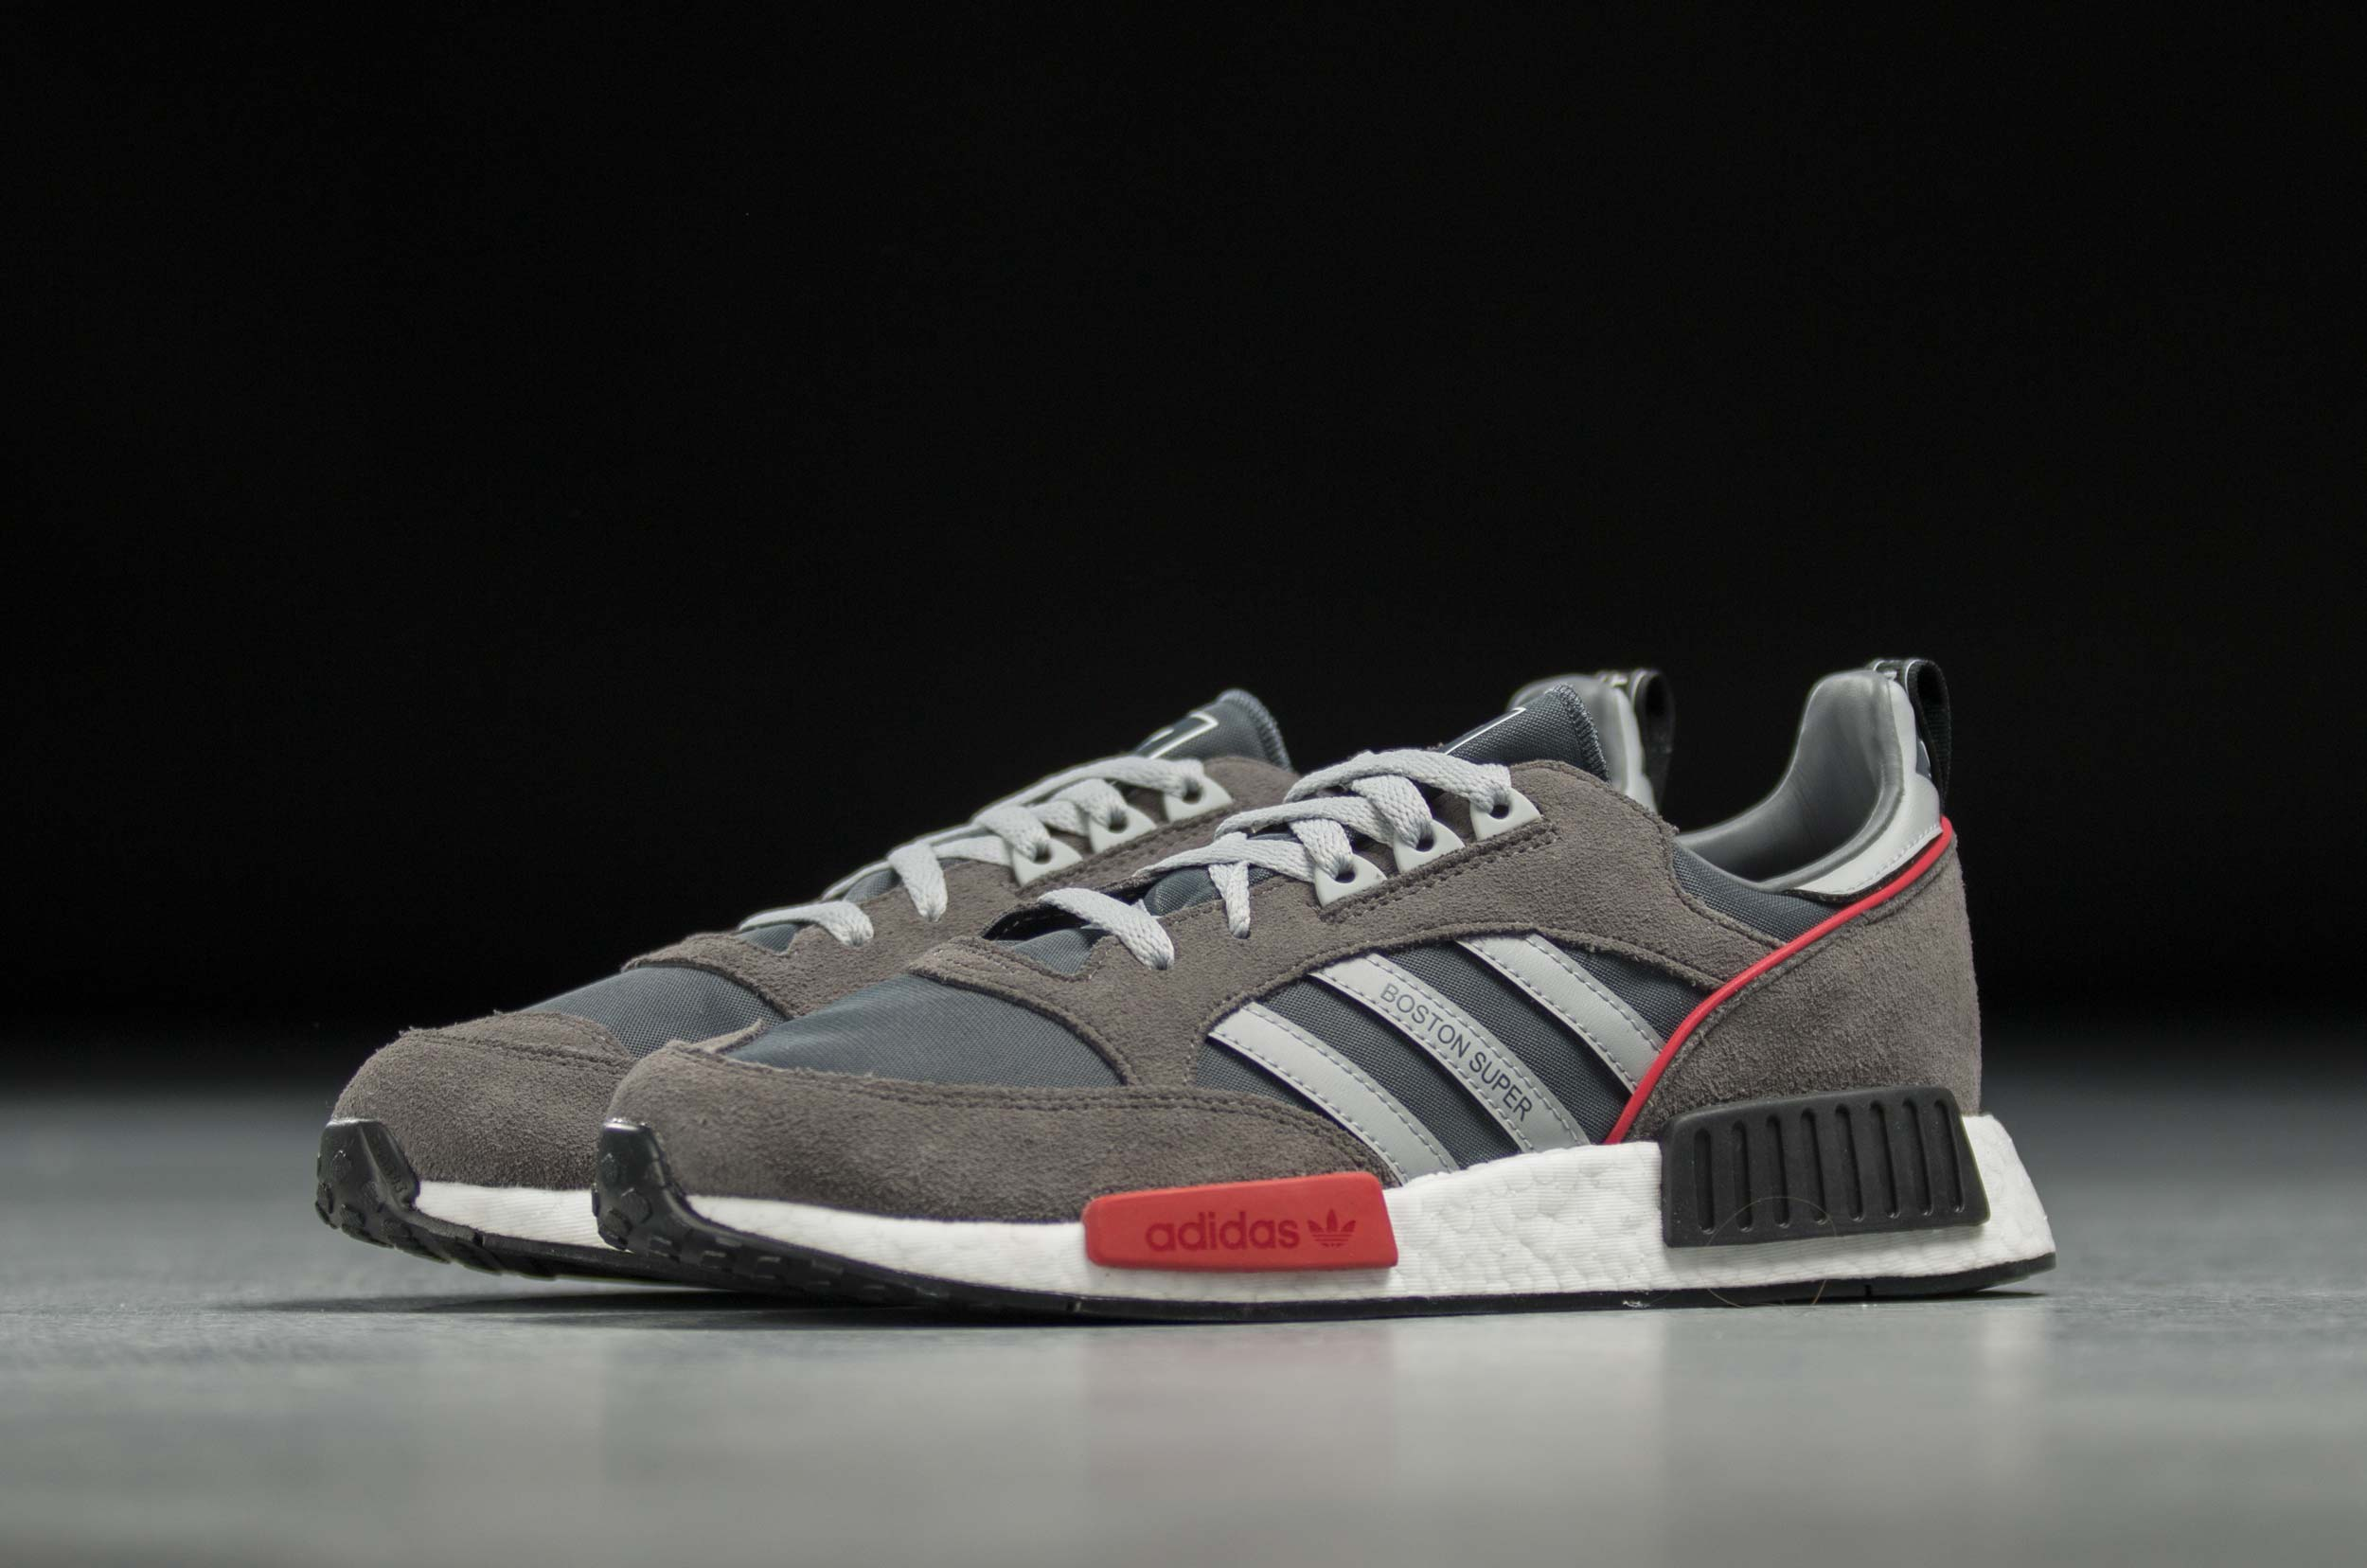 adidas Originals BOSTONSUPERxR1 G26776 Ανθρακί